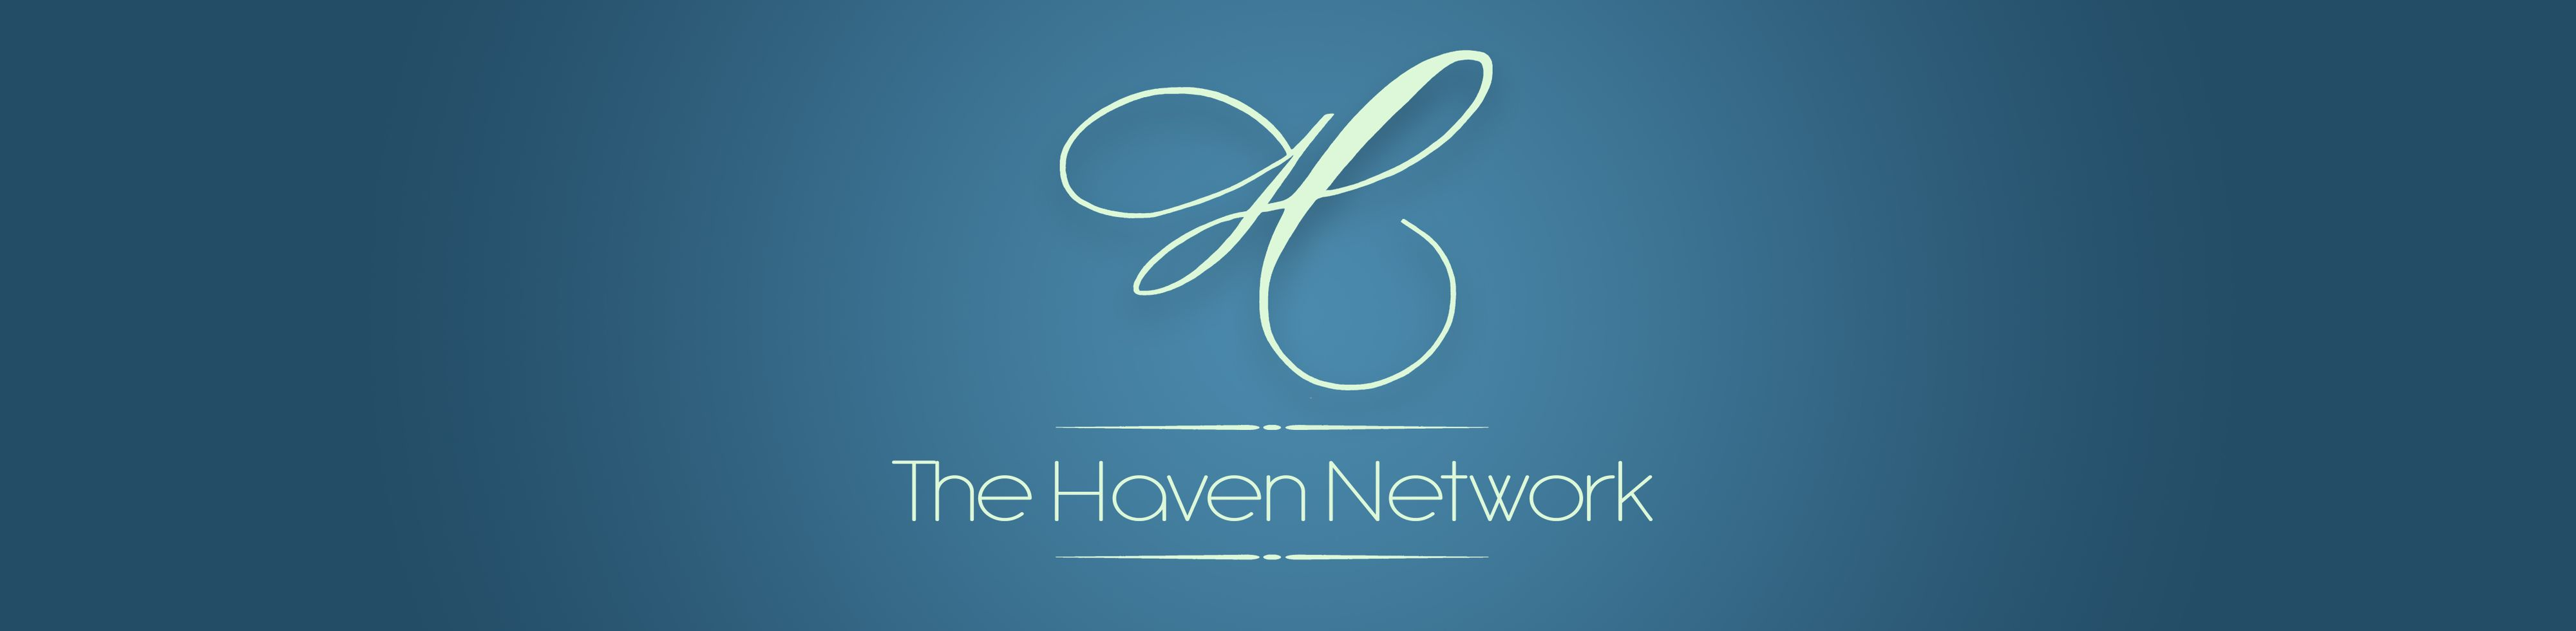 Haven Main Forum Logo.jpg